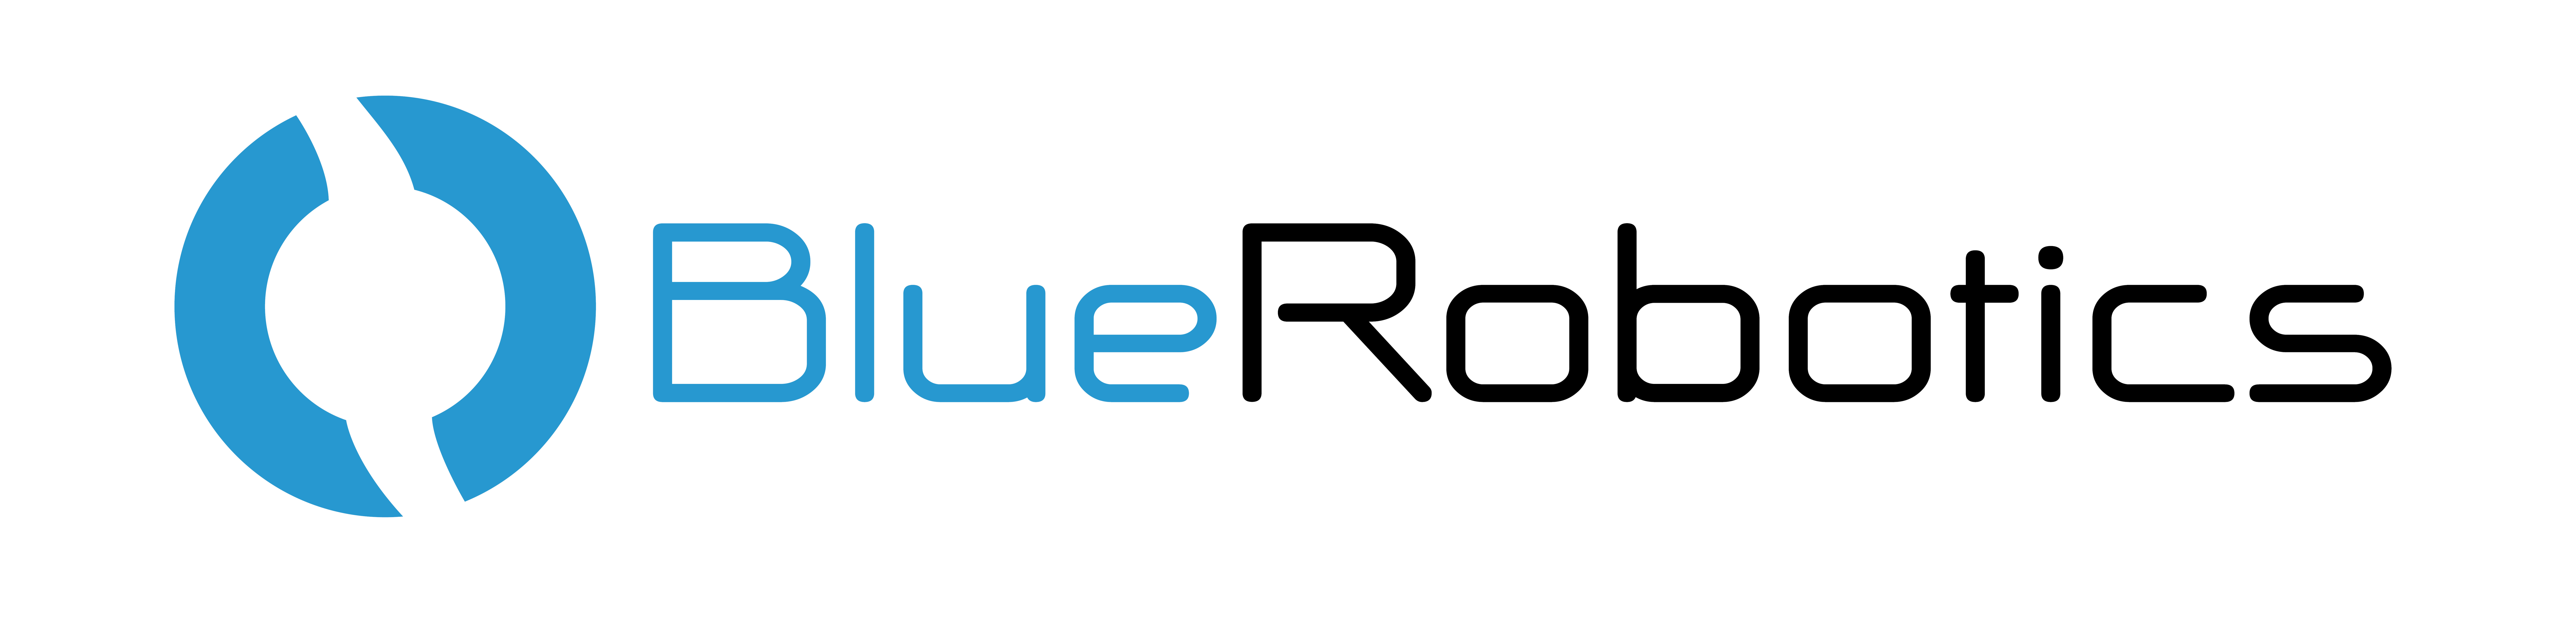 http://www.bluerobotics.com